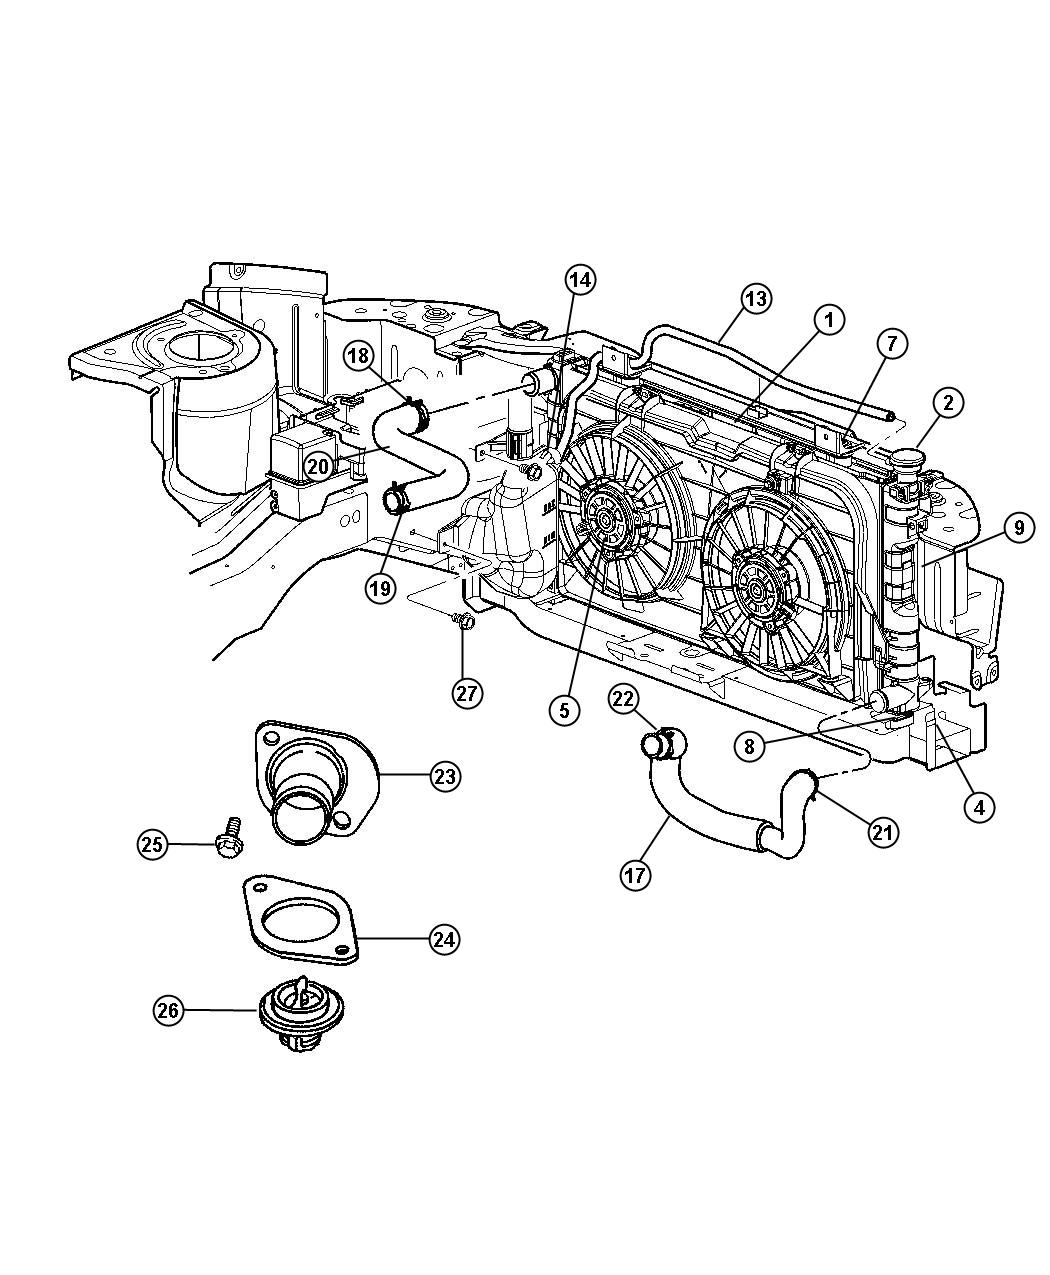 Radiator And Related Parts